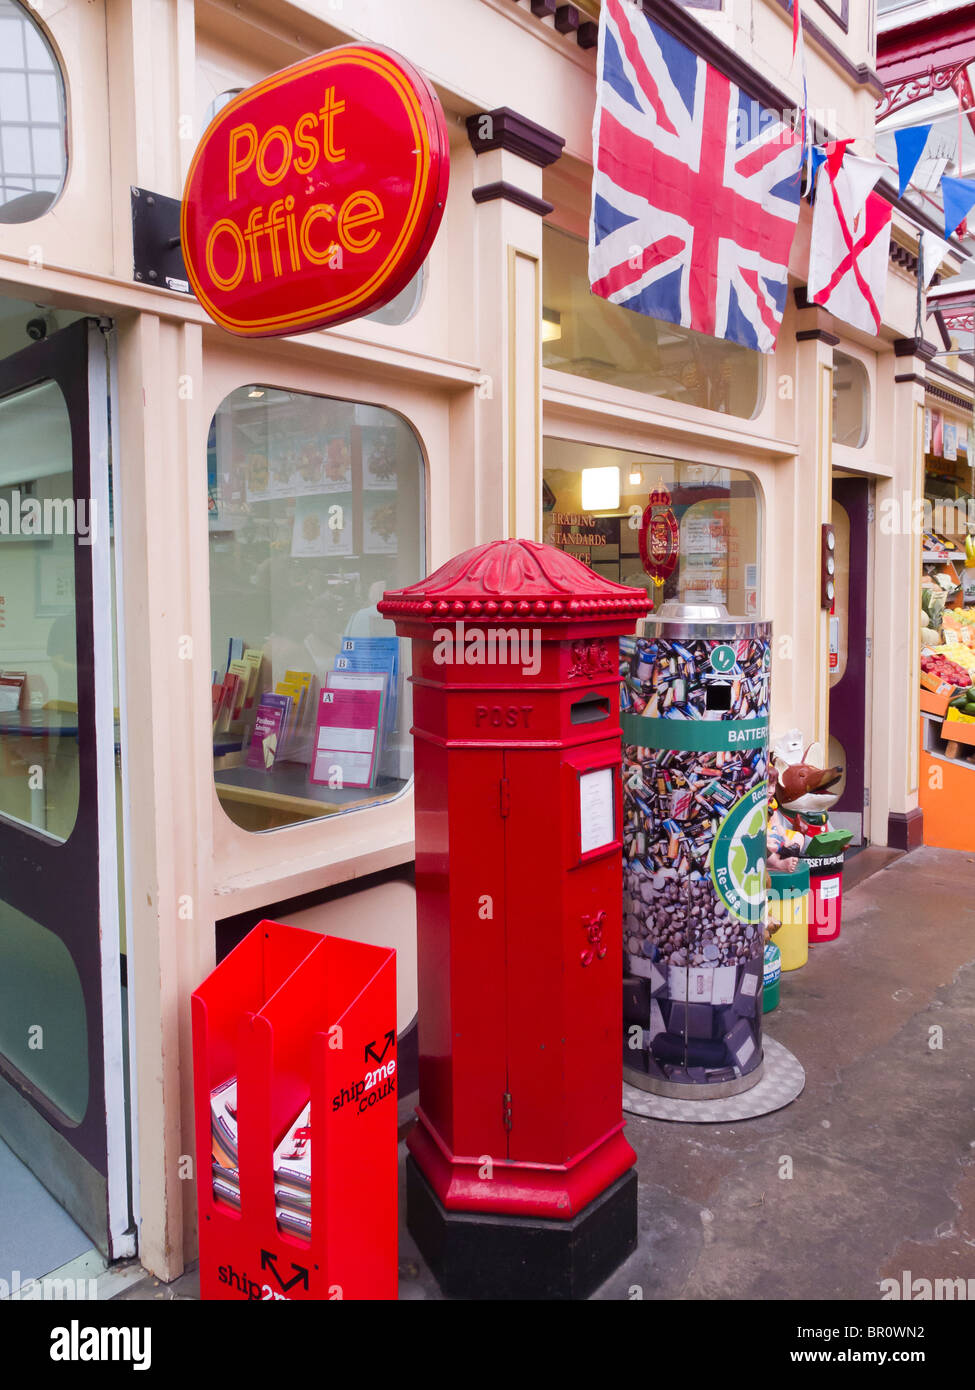 A hexagonal Victorian post box still in use at the Post Office in the covered market in St. Helier, Jersey. - Stock Image